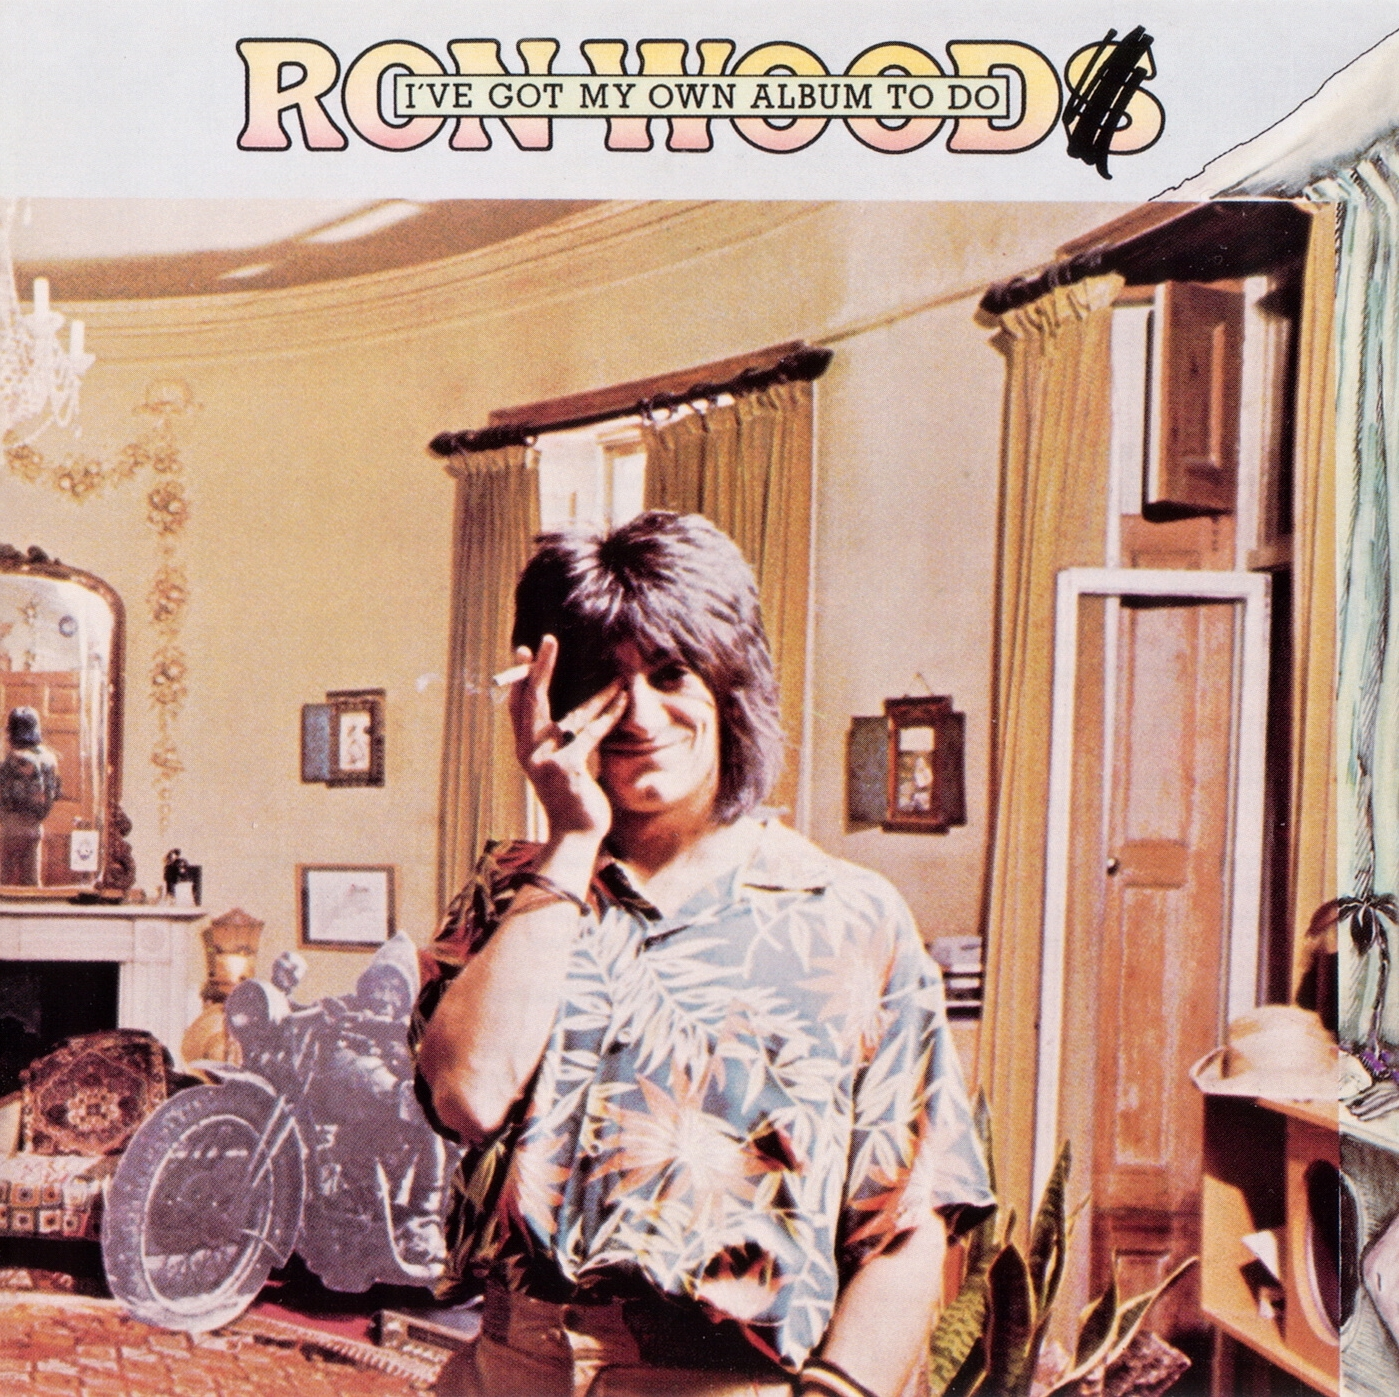 ron_wood_-_i've_got_my_own_album_to_do_-_front